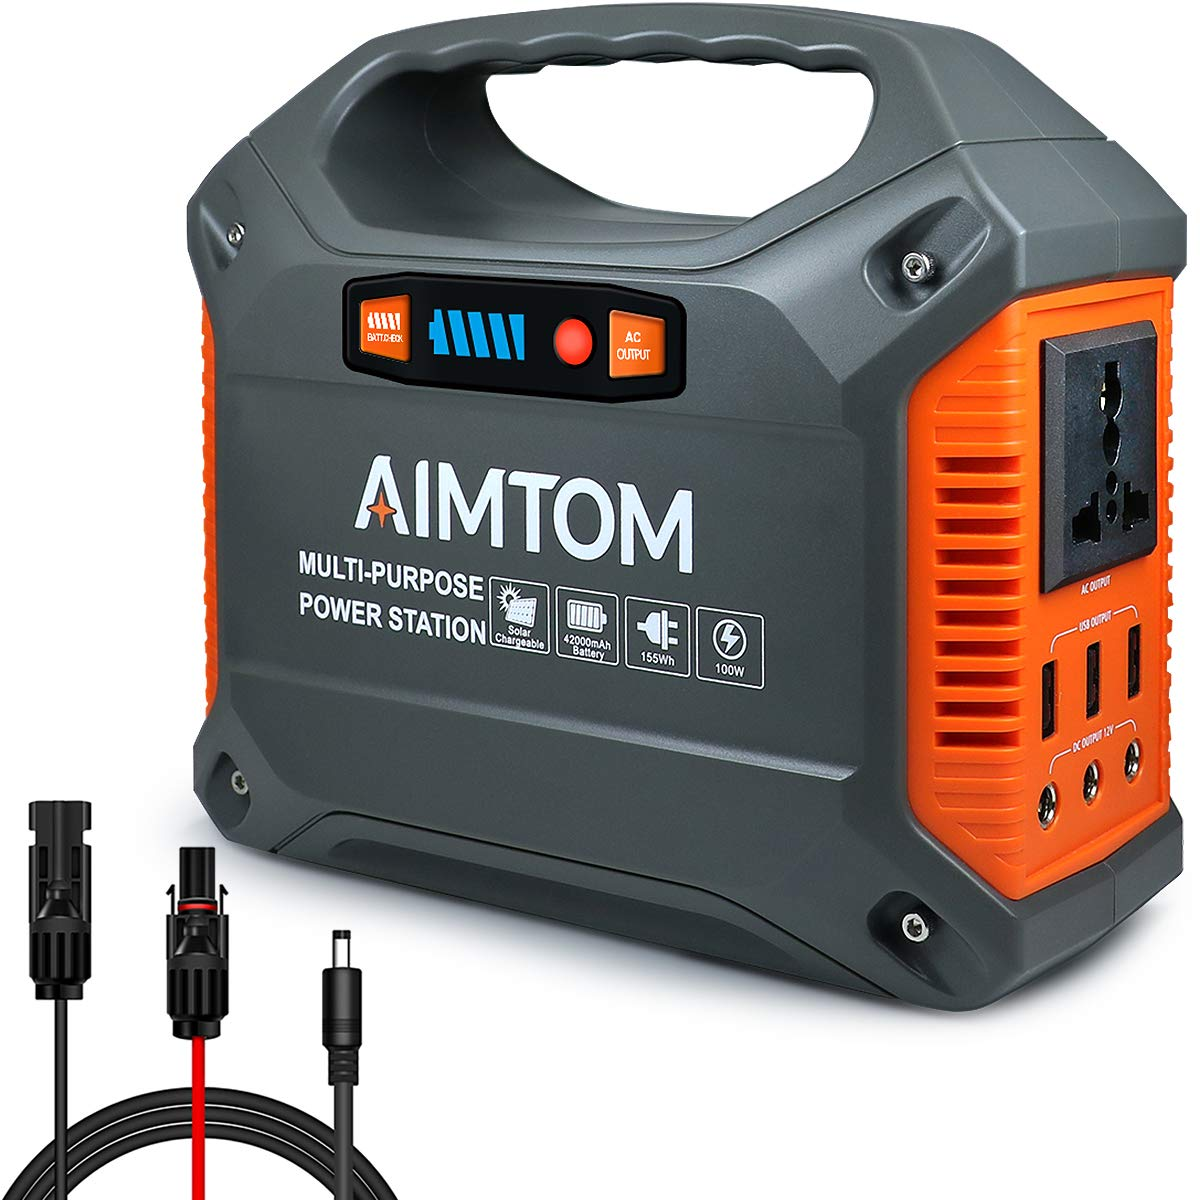 AIMTOM 155Wh Portable Power Station, Solar Rechargeable Lithium Battery Backup Power Supply with 110V 100W Peak 150W AC Inverter Outlet, USB Ports, DC Output for Outdoors Camping Travel Emergency